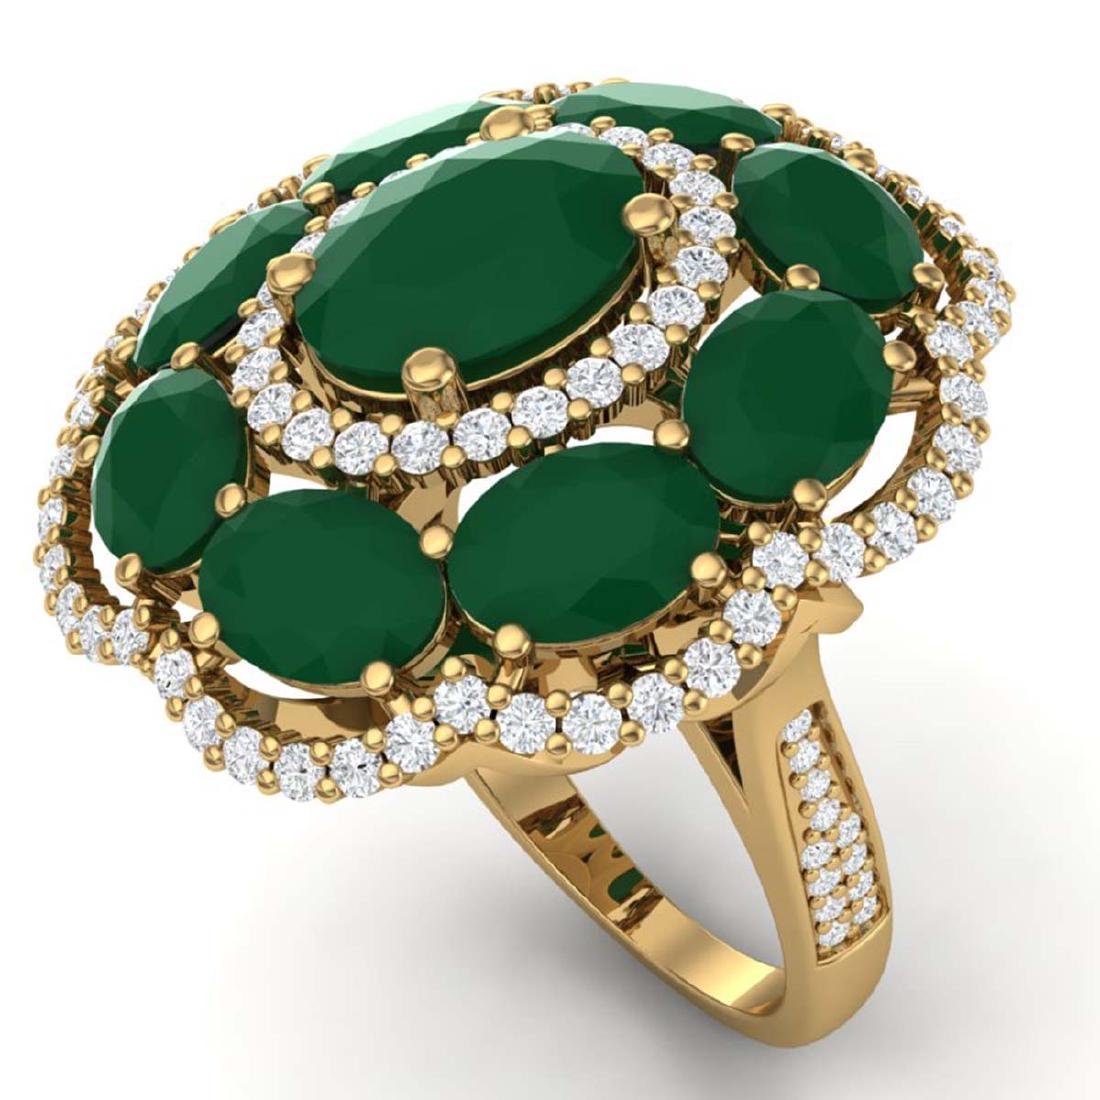 14.4 ctw Designer Emerald & VS Diamond Ring 18K Yellow